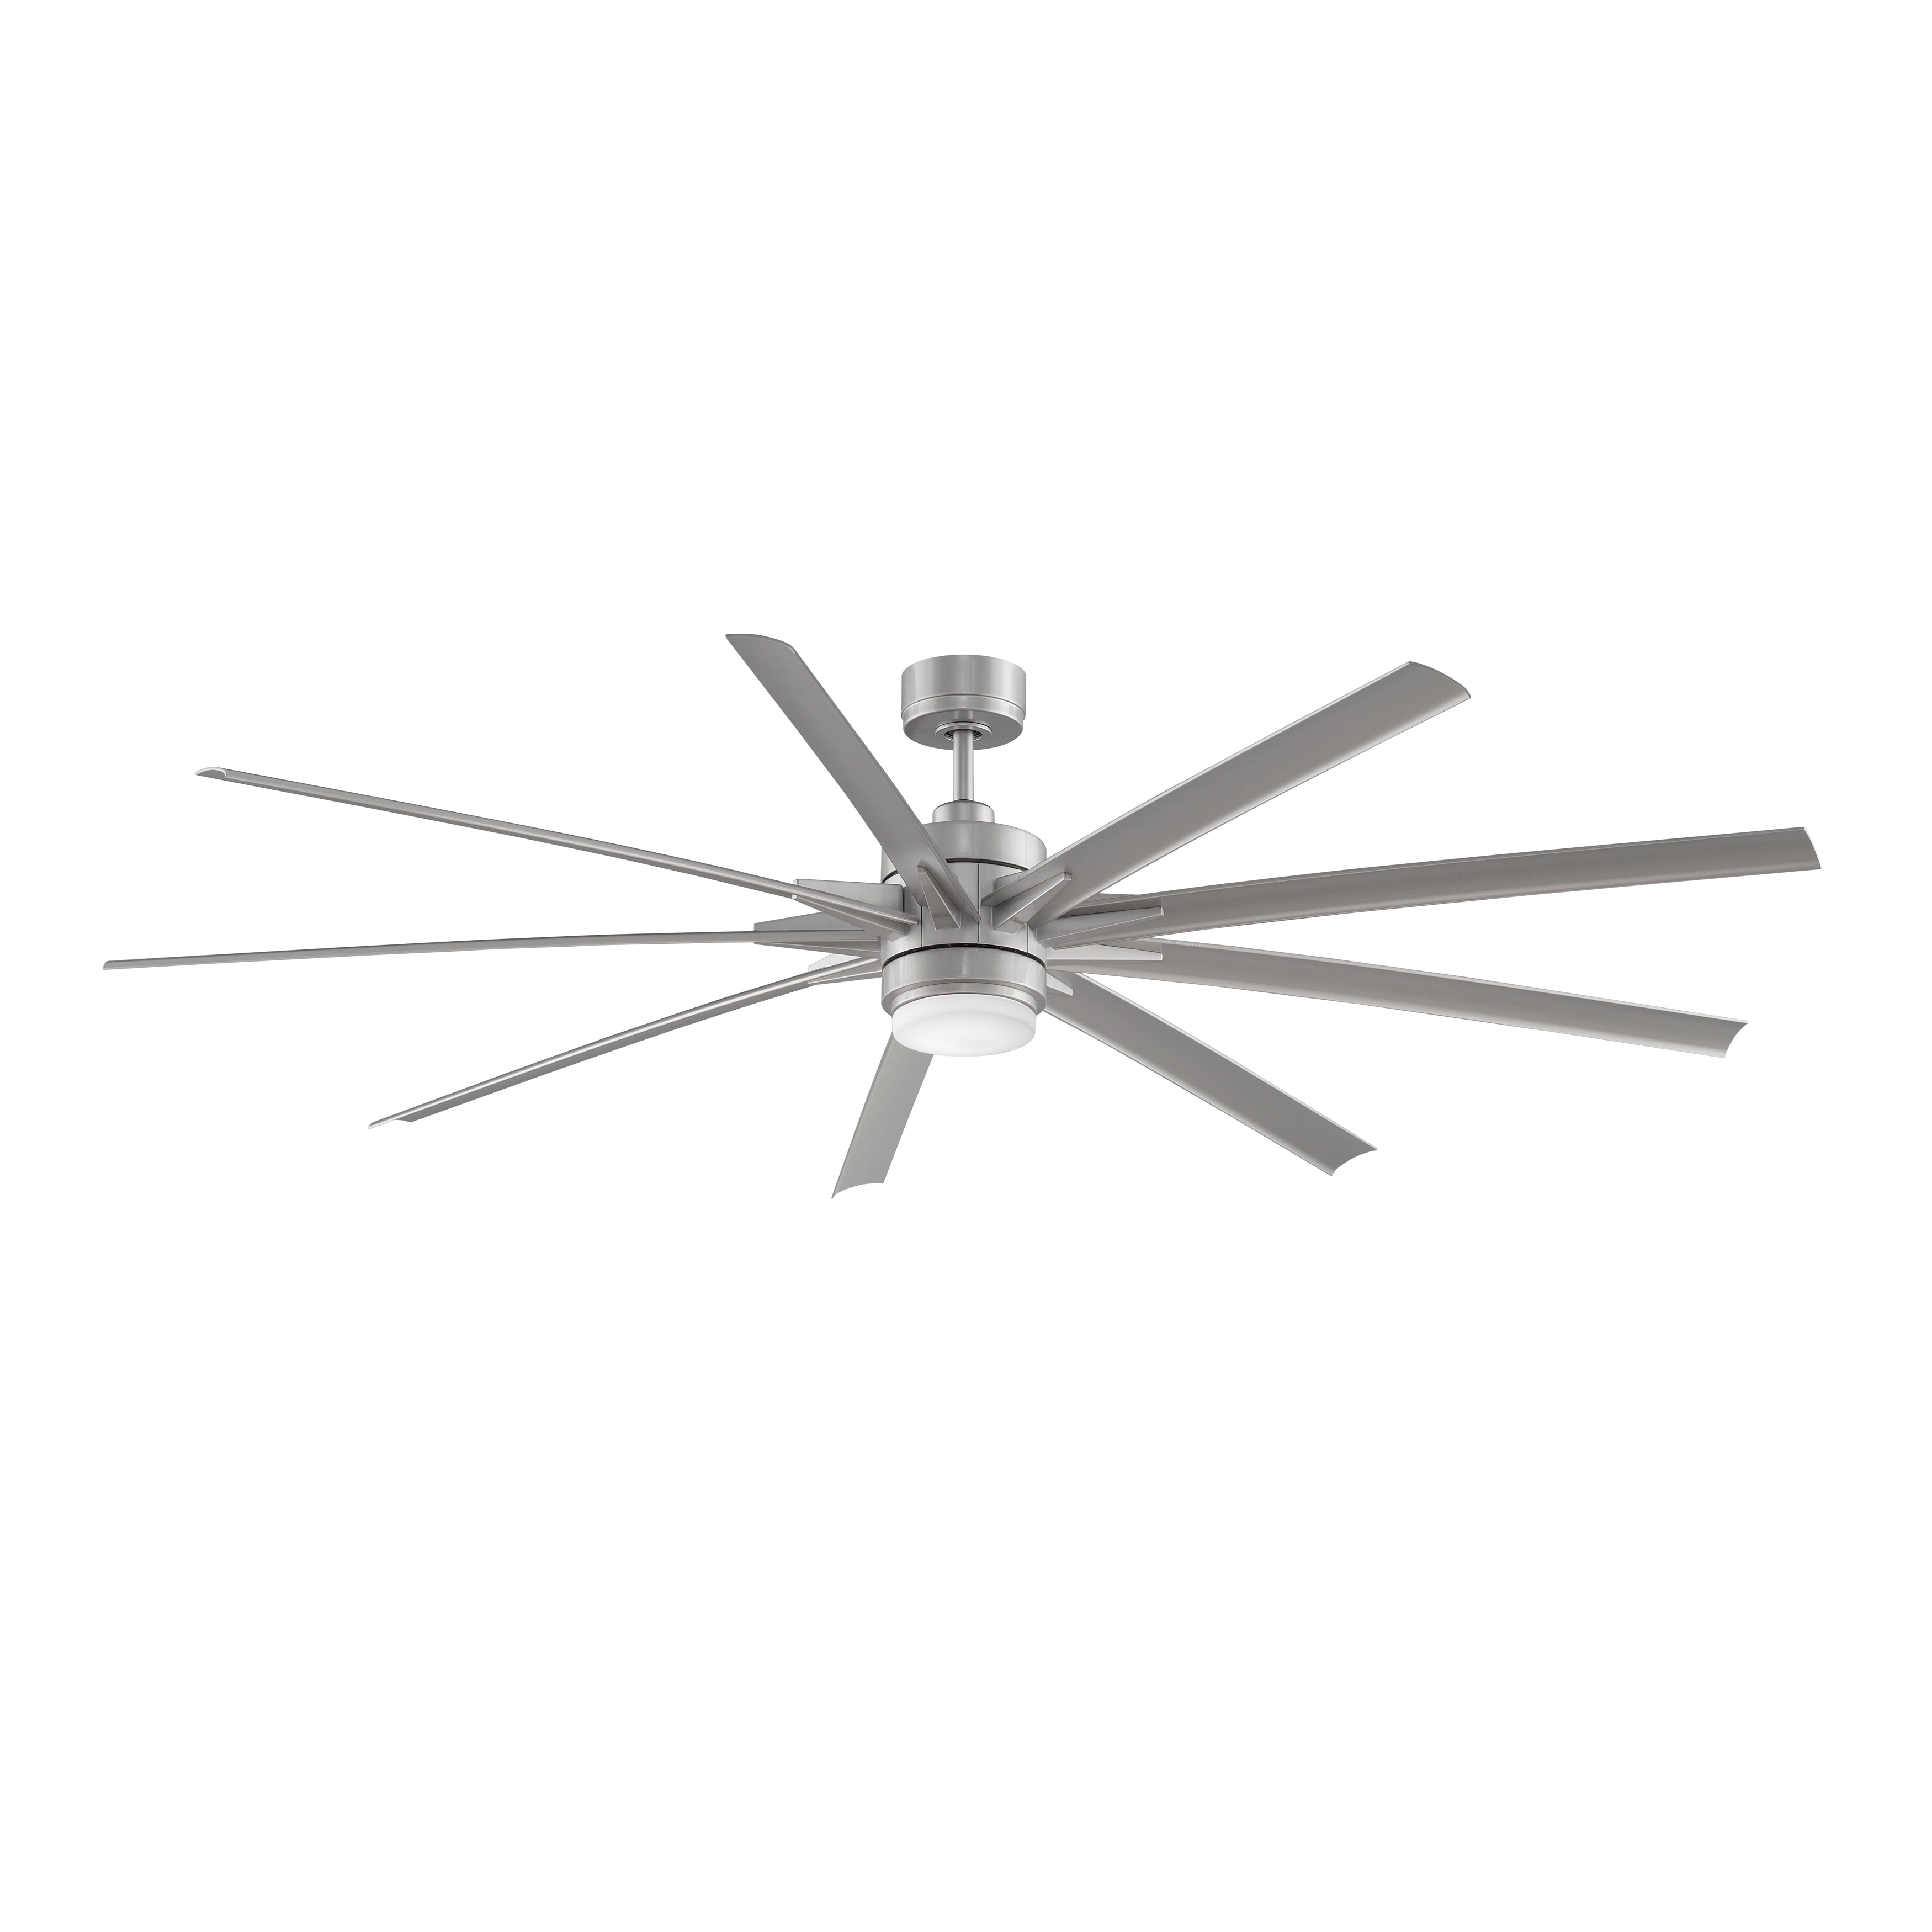 Odyn 84 inch Ceiling Fan with LED Free Shipping Today